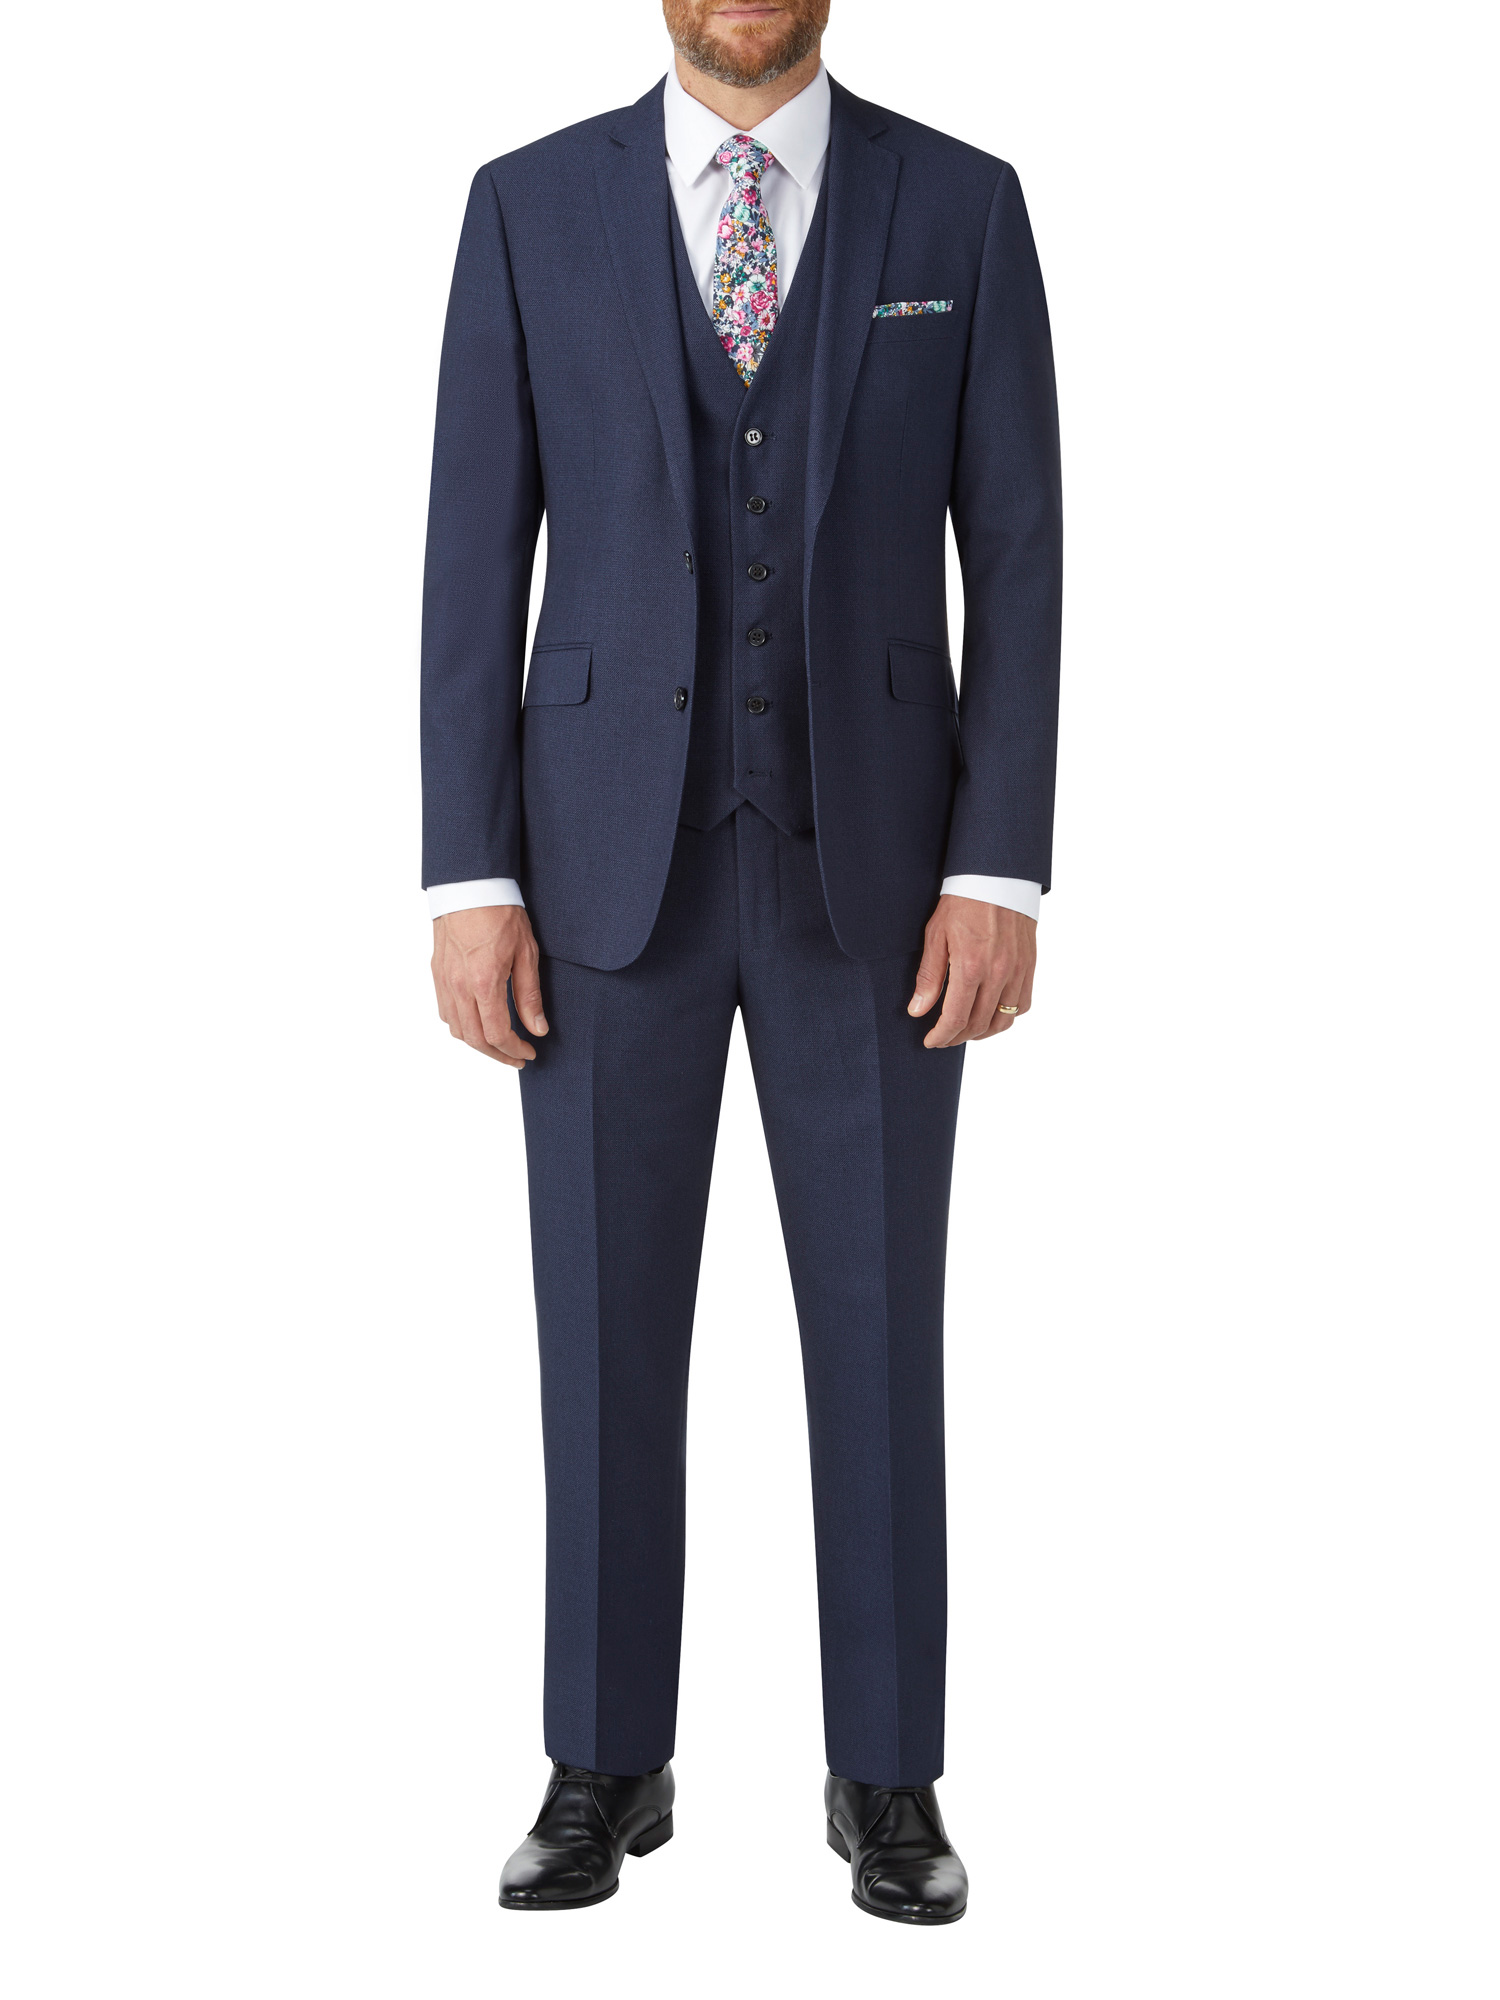 Harcourt Tailored Navy 3 Piece Suit